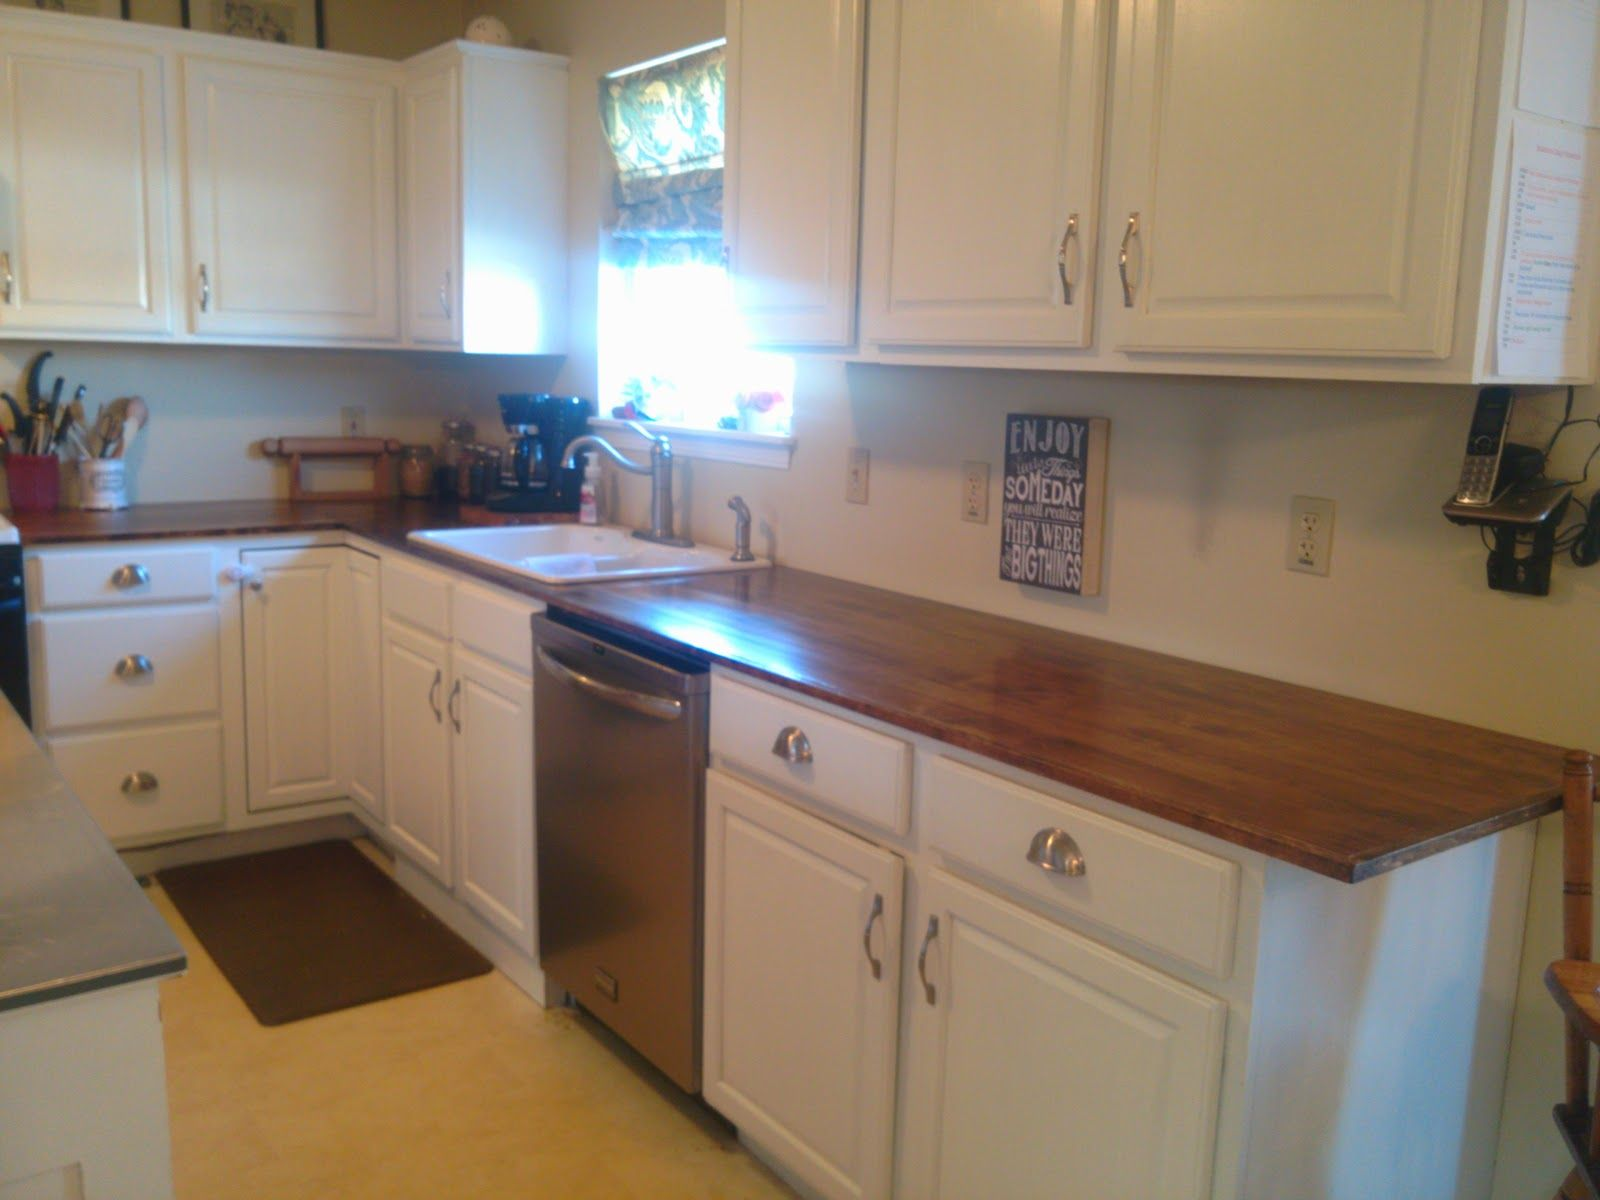 on bliss street brand new countertops for 120 eat that expensive countertop people part 3. Black Bedroom Furniture Sets. Home Design Ideas